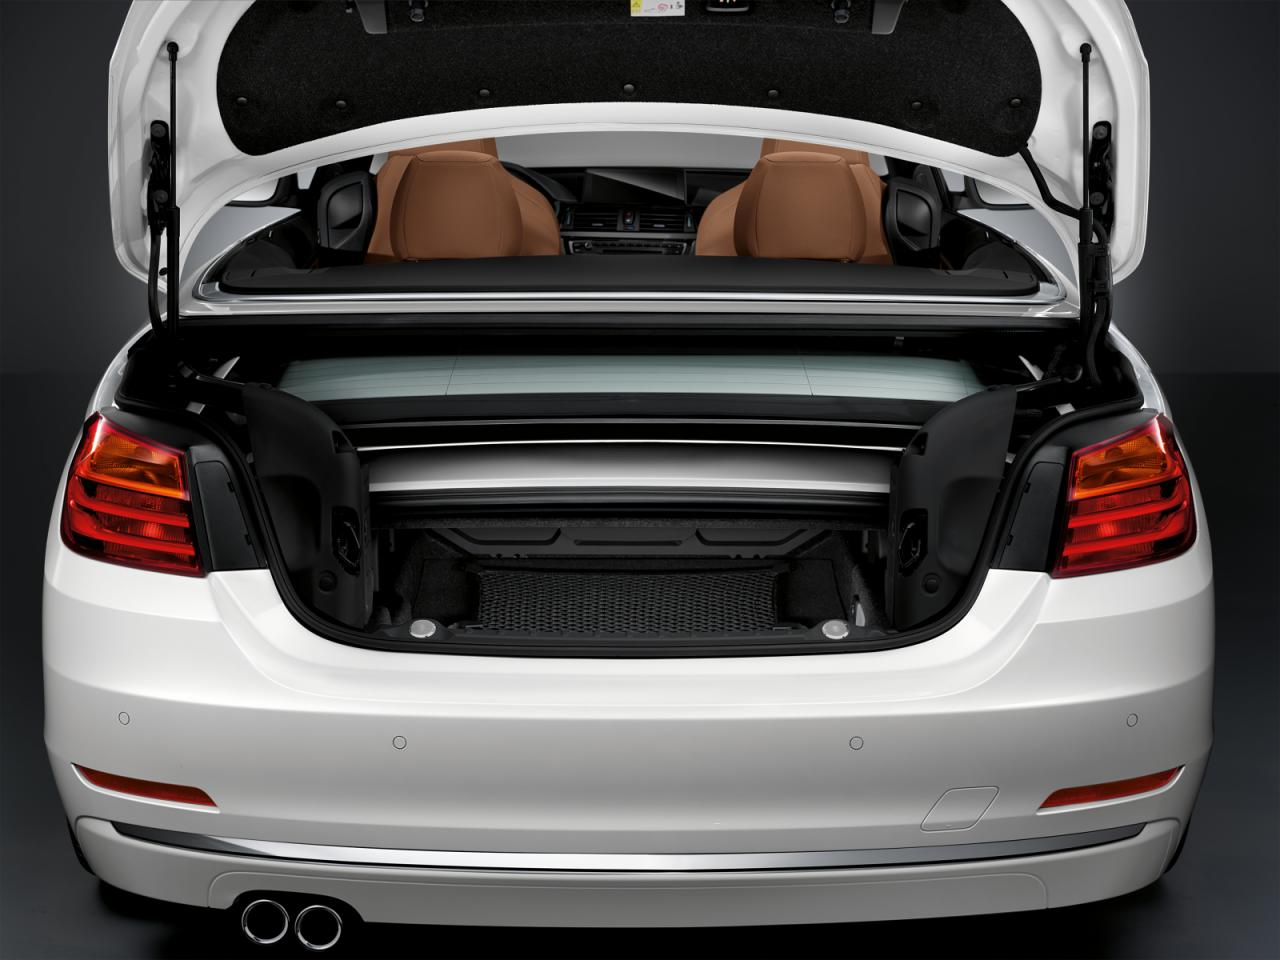 Bmw 3 Series Convertible Luggage Space